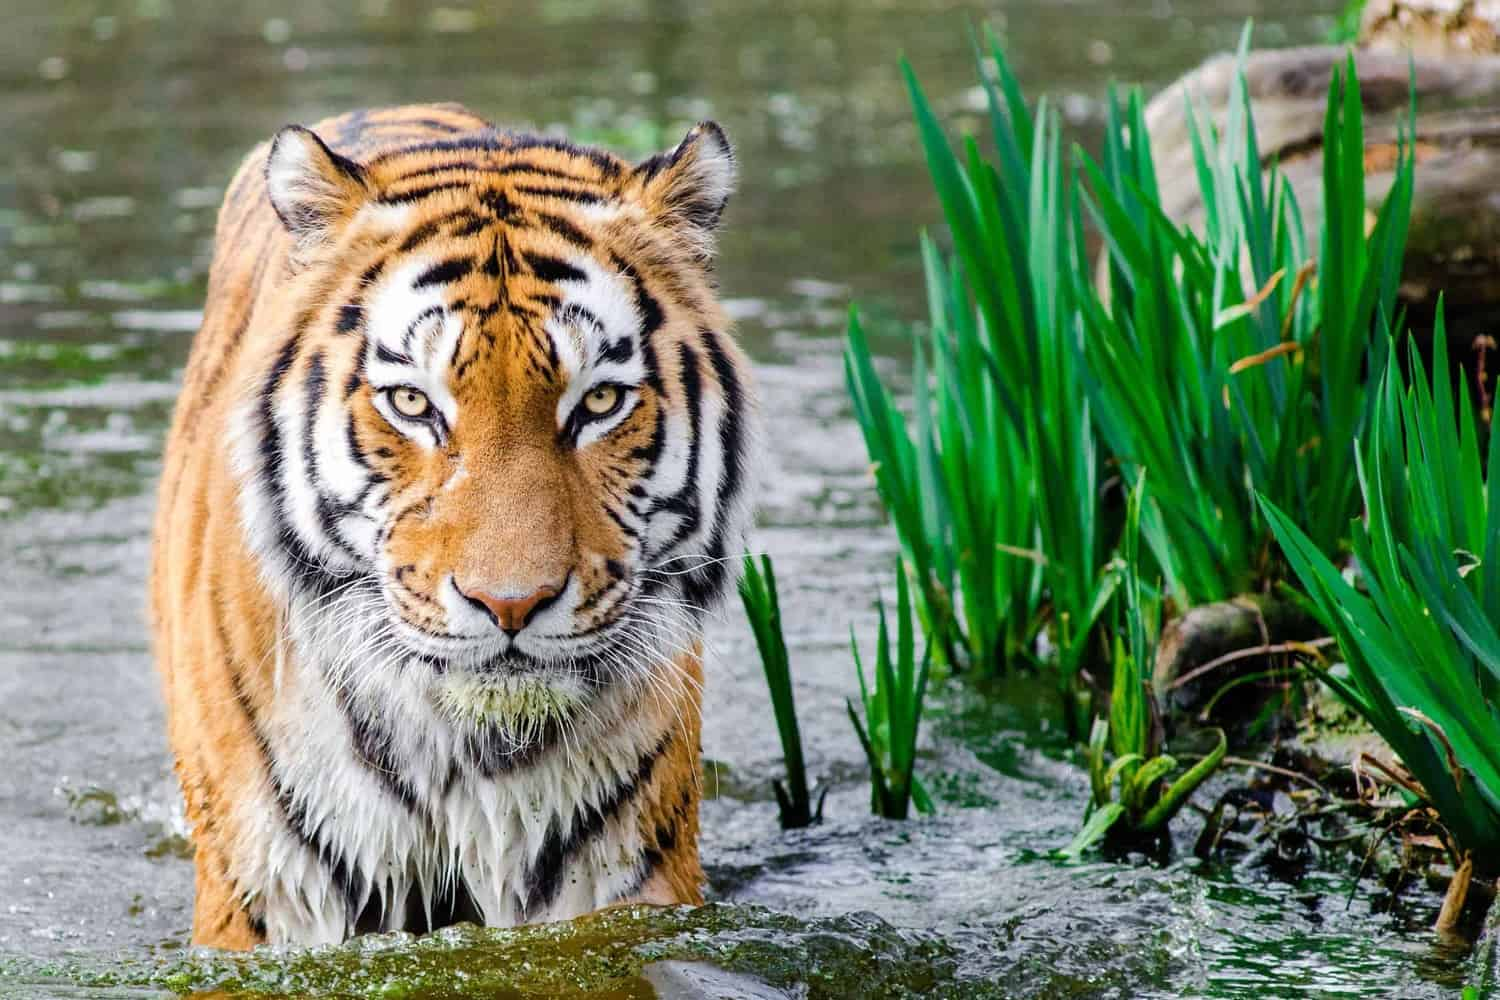 Tiger in pond staring at camera.